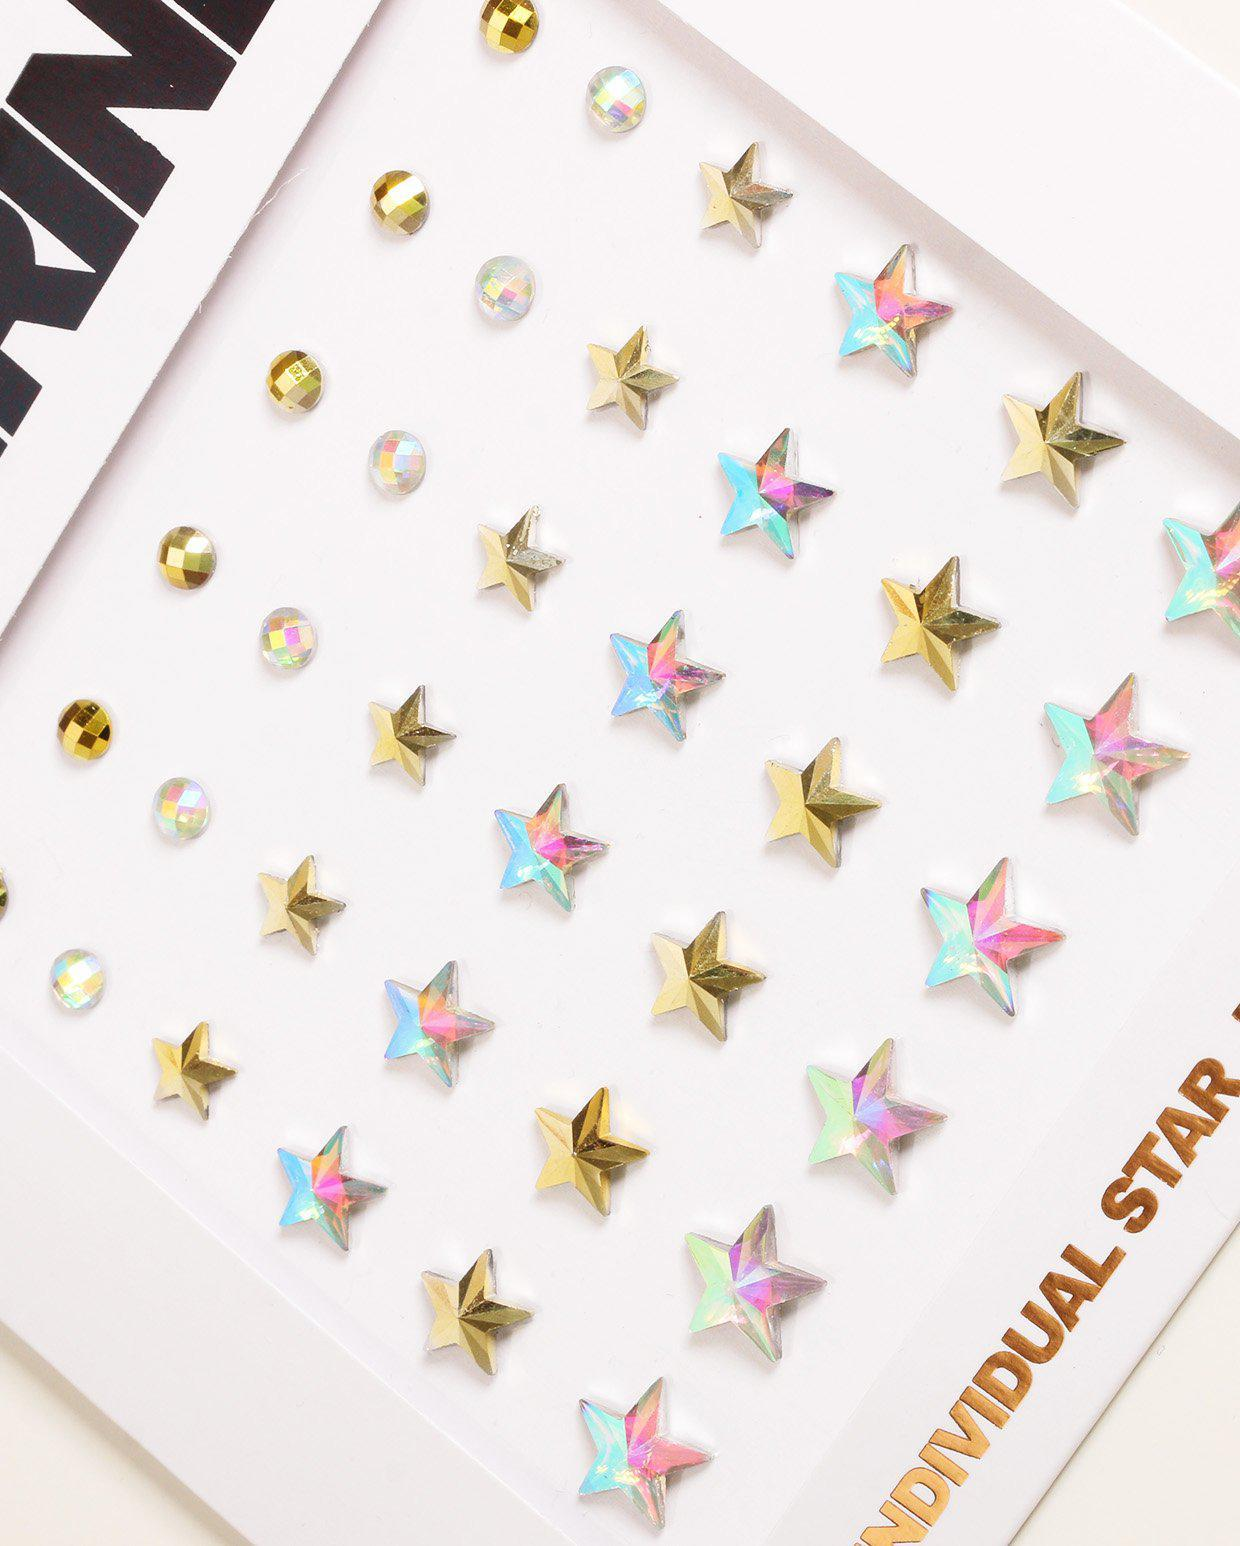 Close up of individual star face jewels